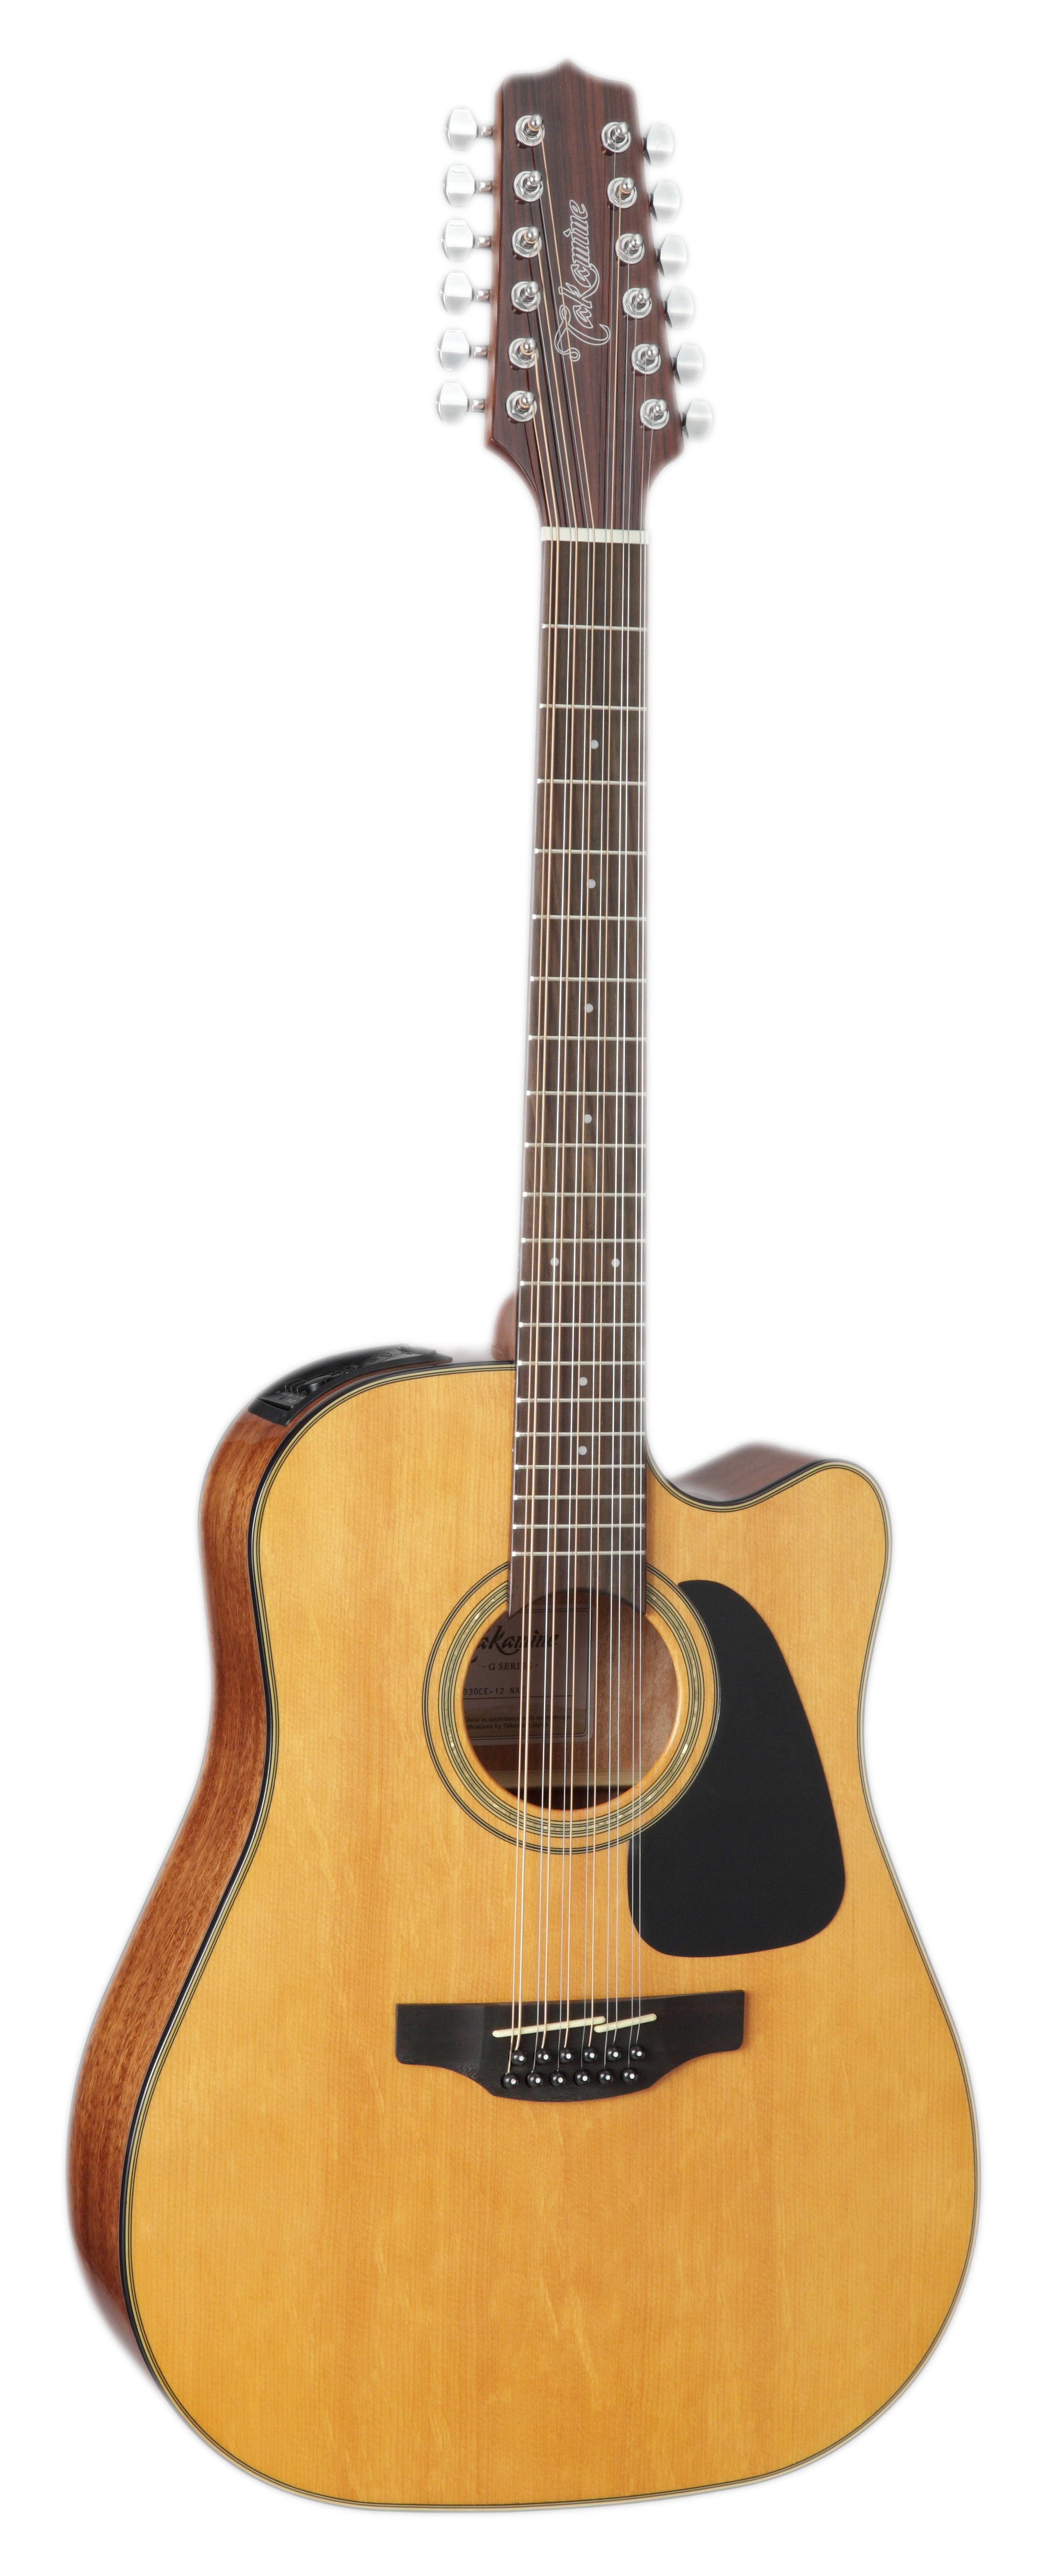 takamine gd30ce12 12 string dreadnought acoustic electric guitar w hard case 660845717374 ebay. Black Bedroom Furniture Sets. Home Design Ideas